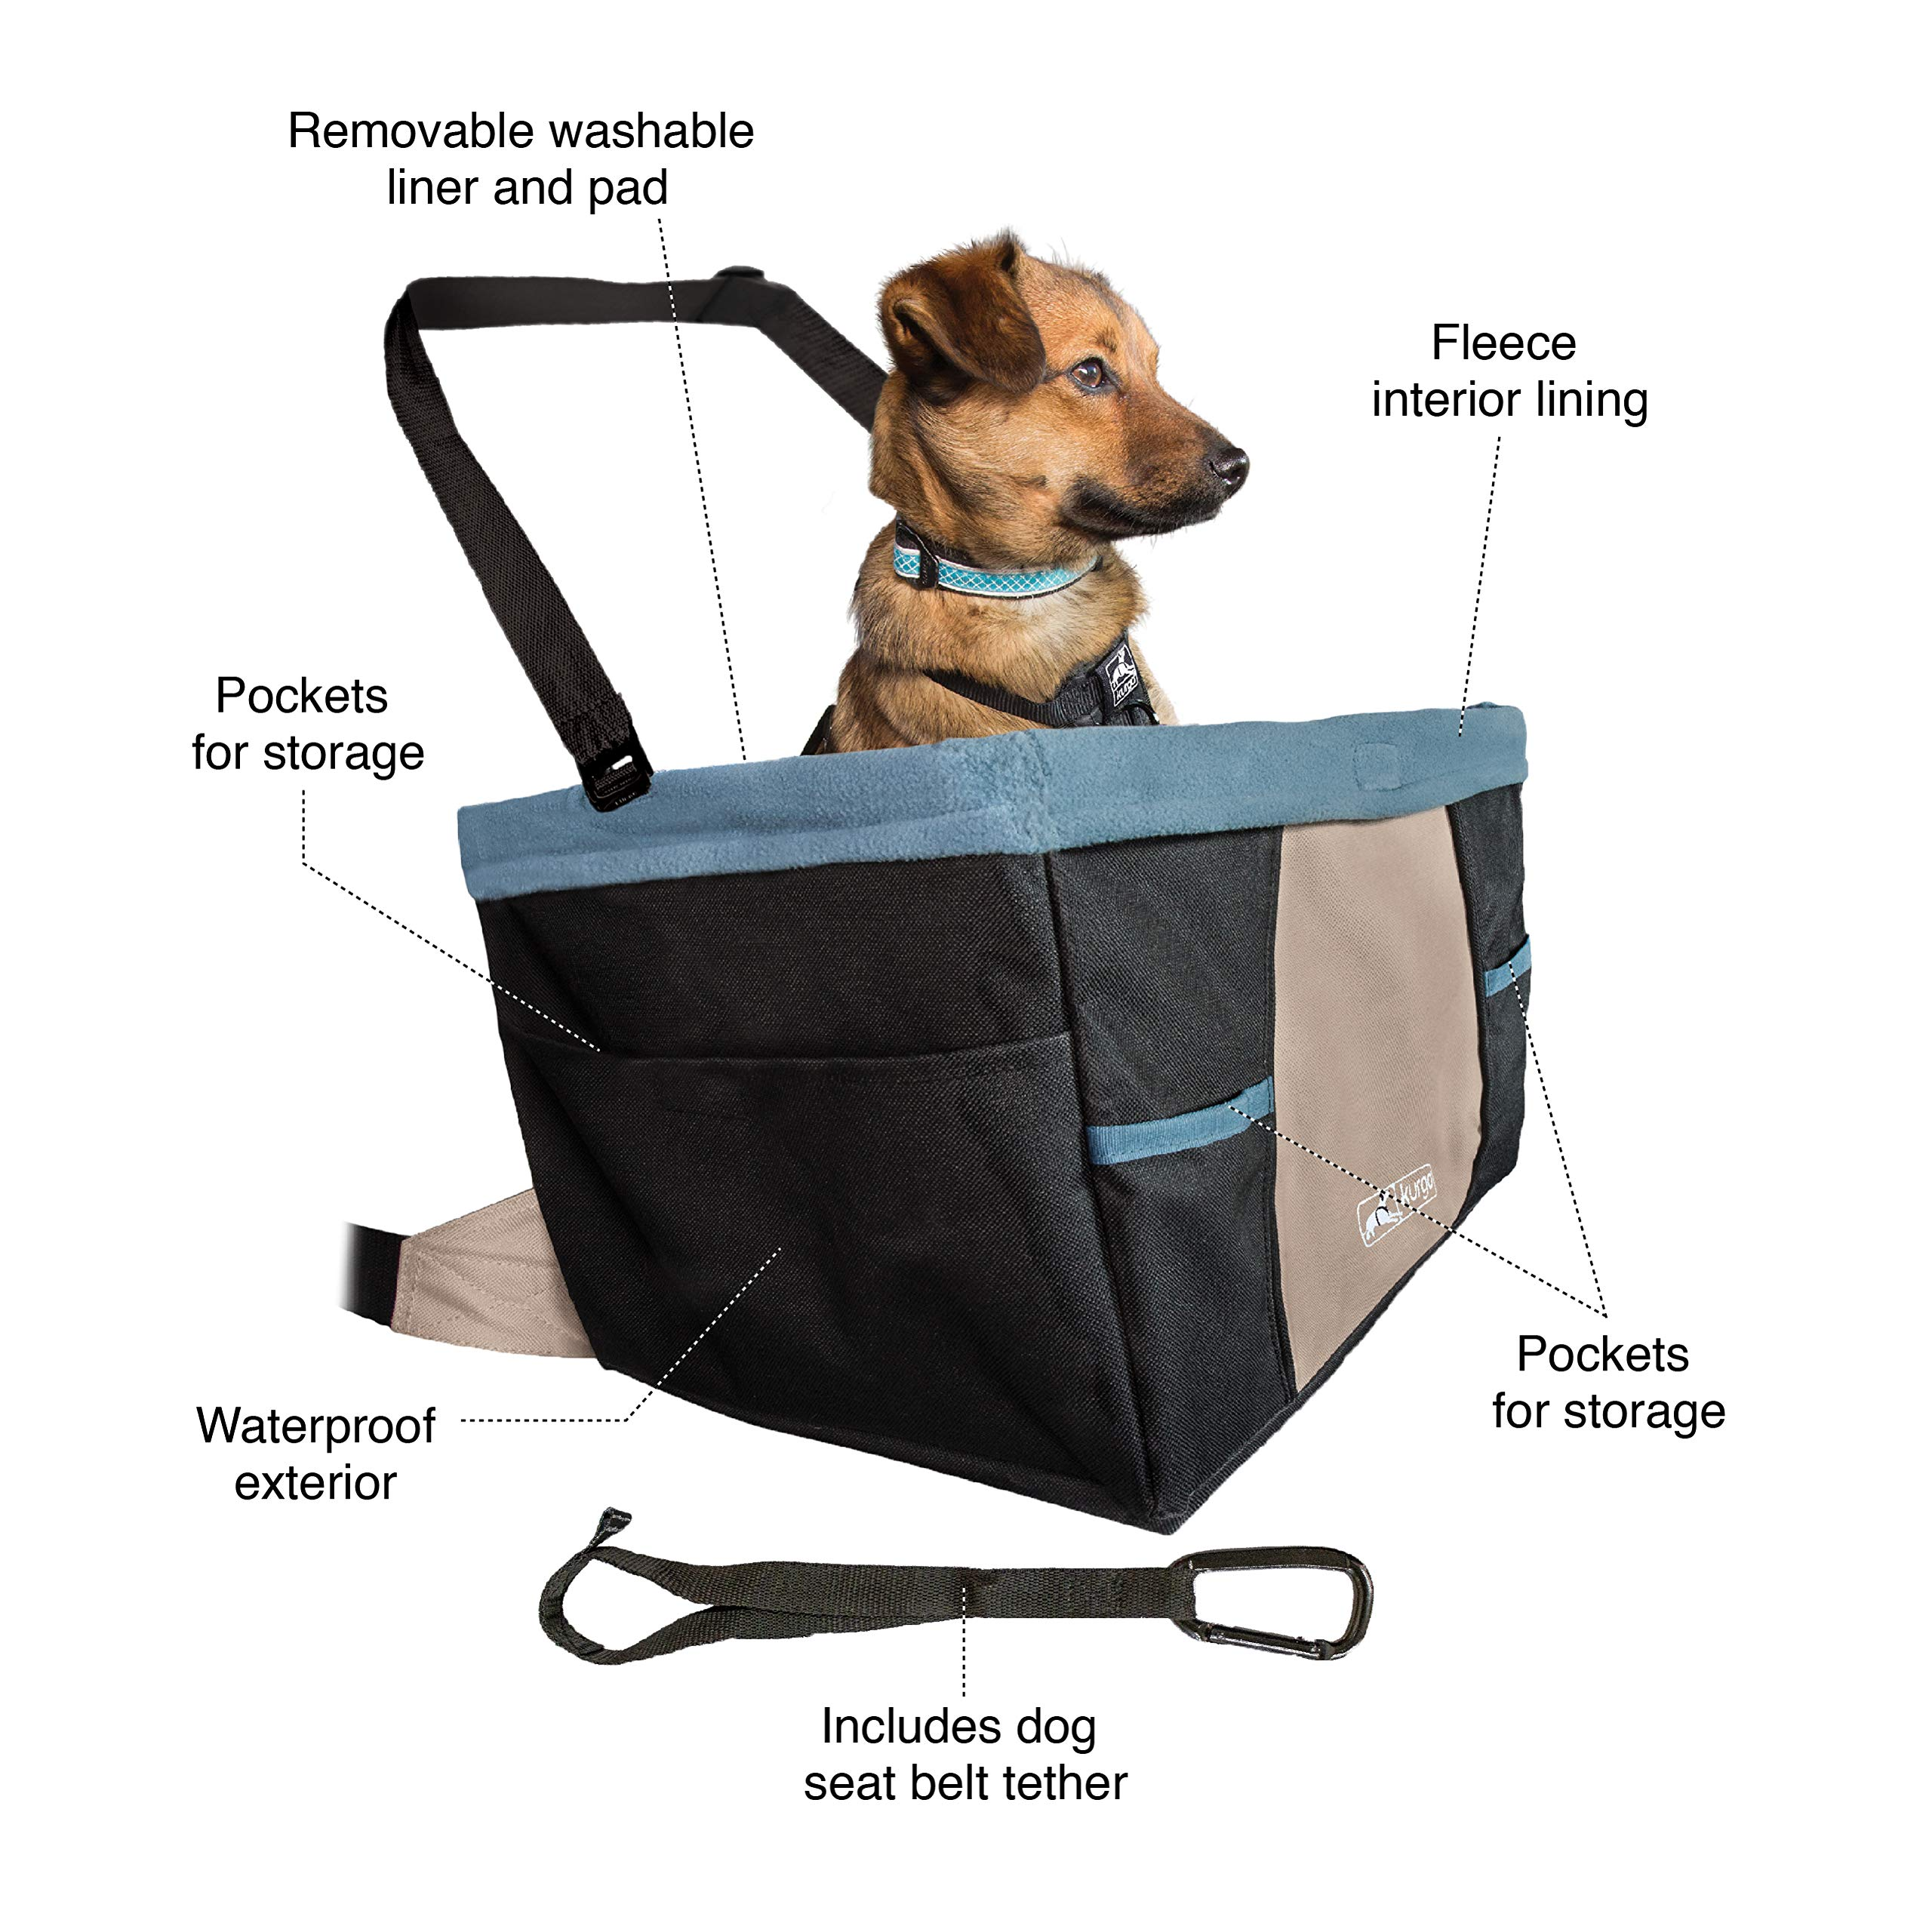 Kurgo Rover Booster Dog Car Seat with Seat Belt Tether, Black/Blue by Kurgo (Image #2)